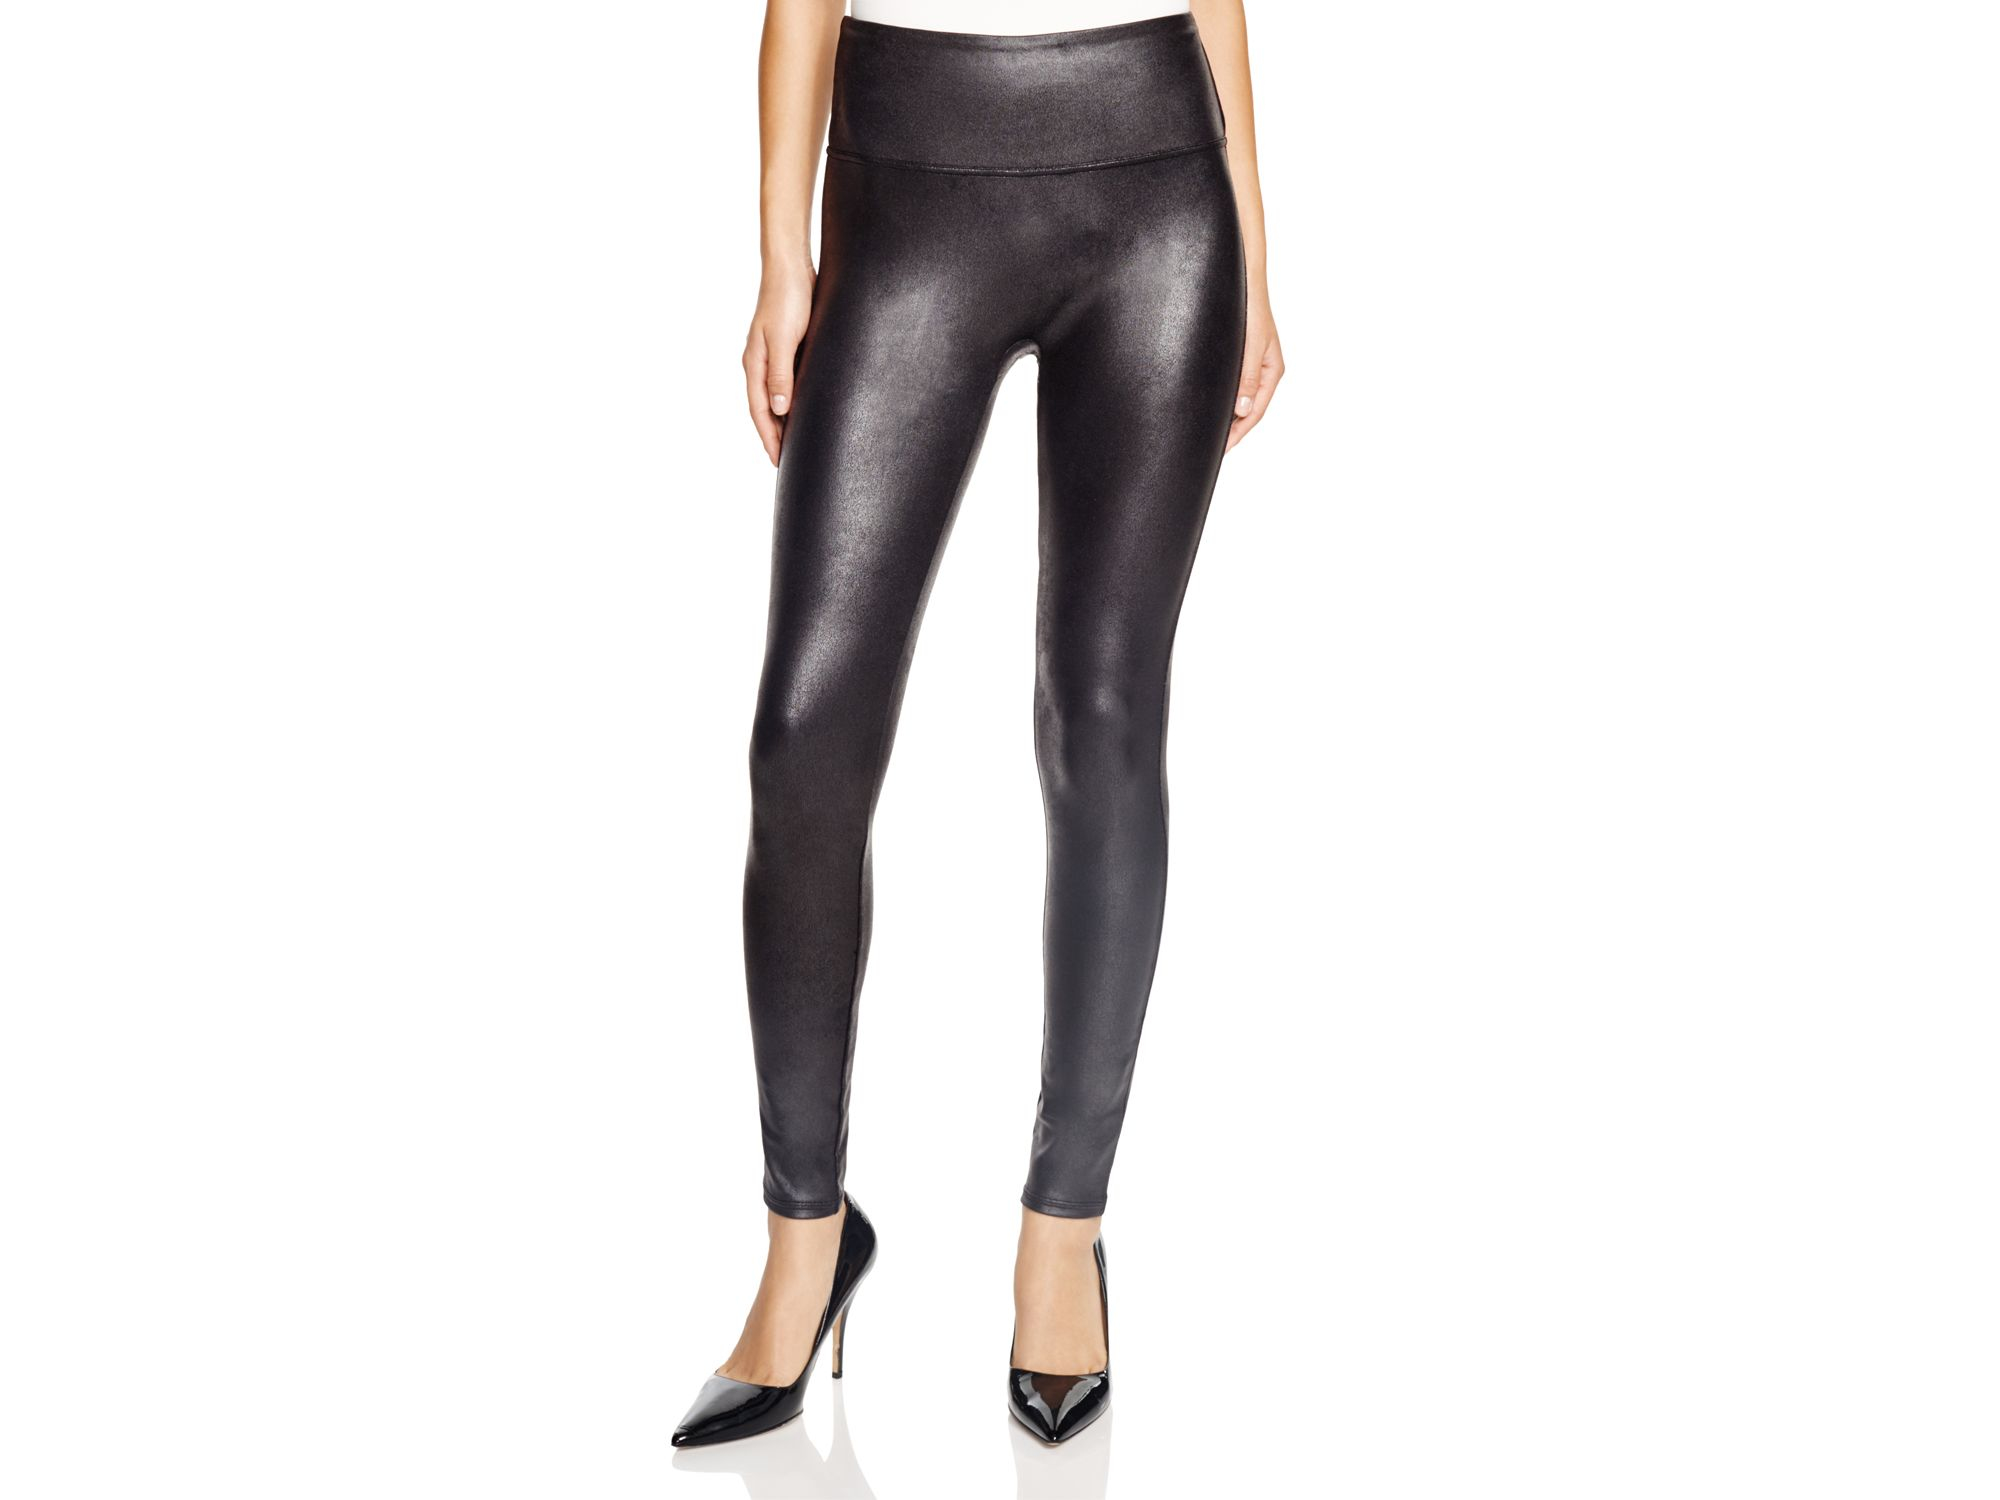 Find great deals on eBay for leather leggings. Shop with confidence.